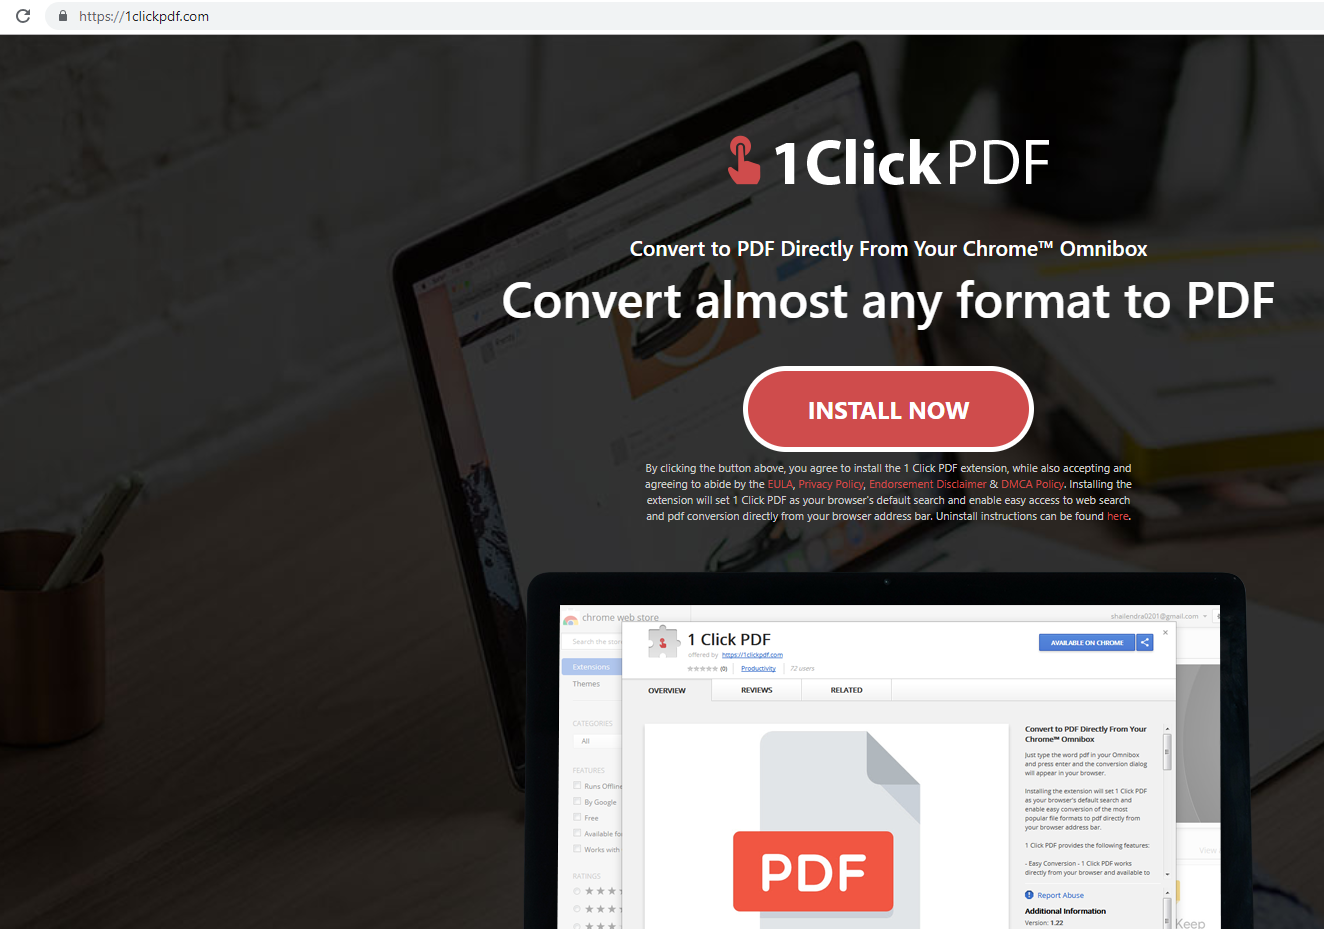 1ClickPDF from Mac